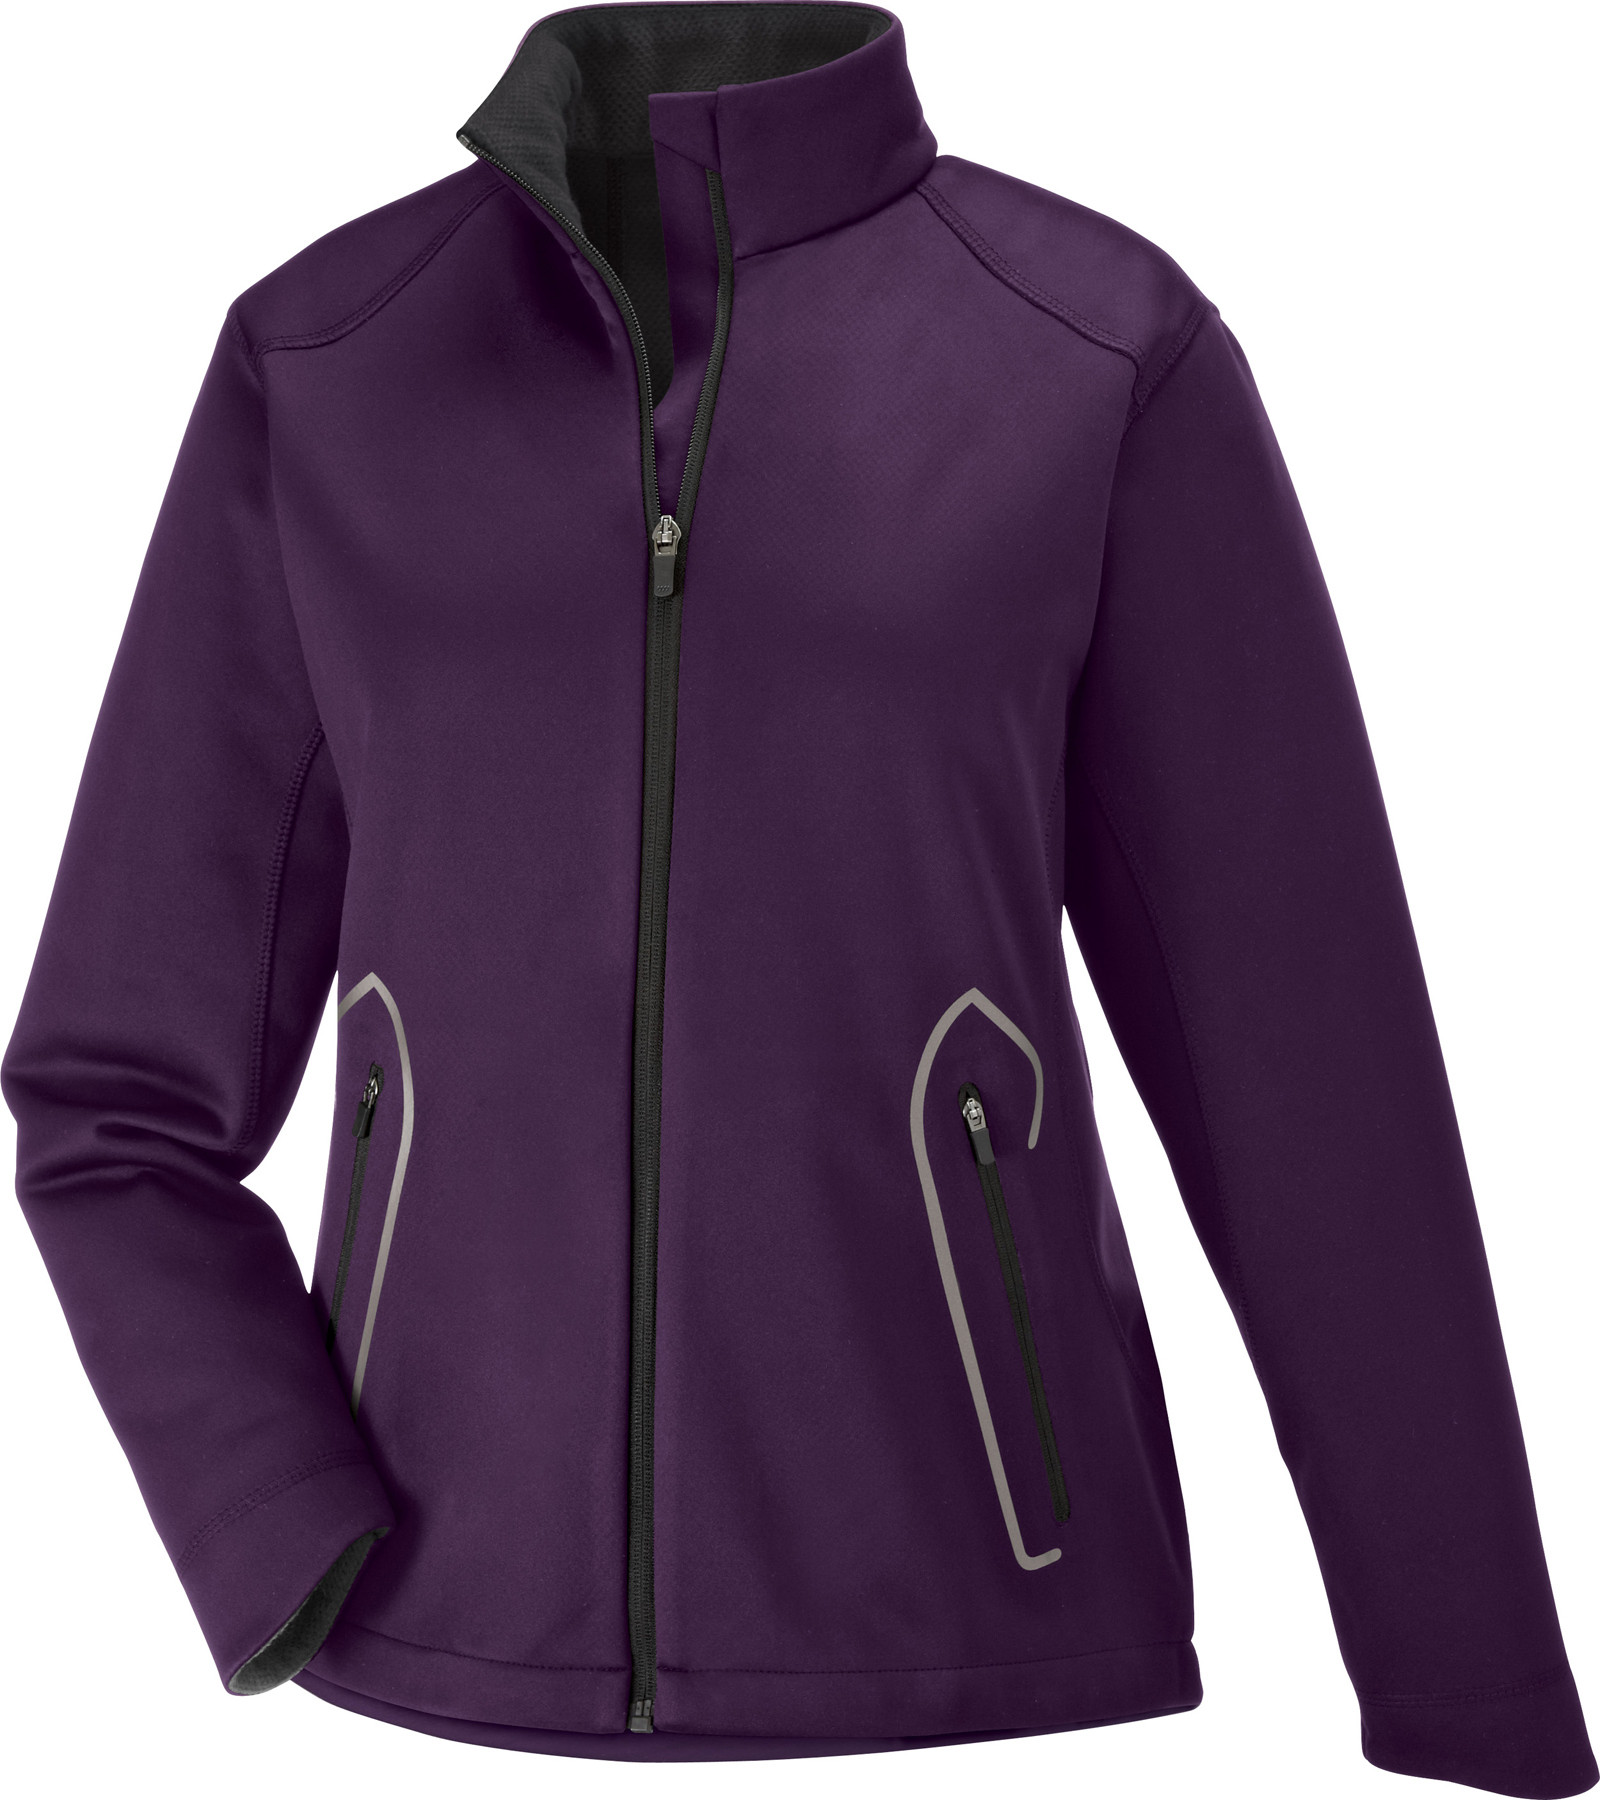 Ash City Performance Jackets 78655 - Splice Ladies' ...